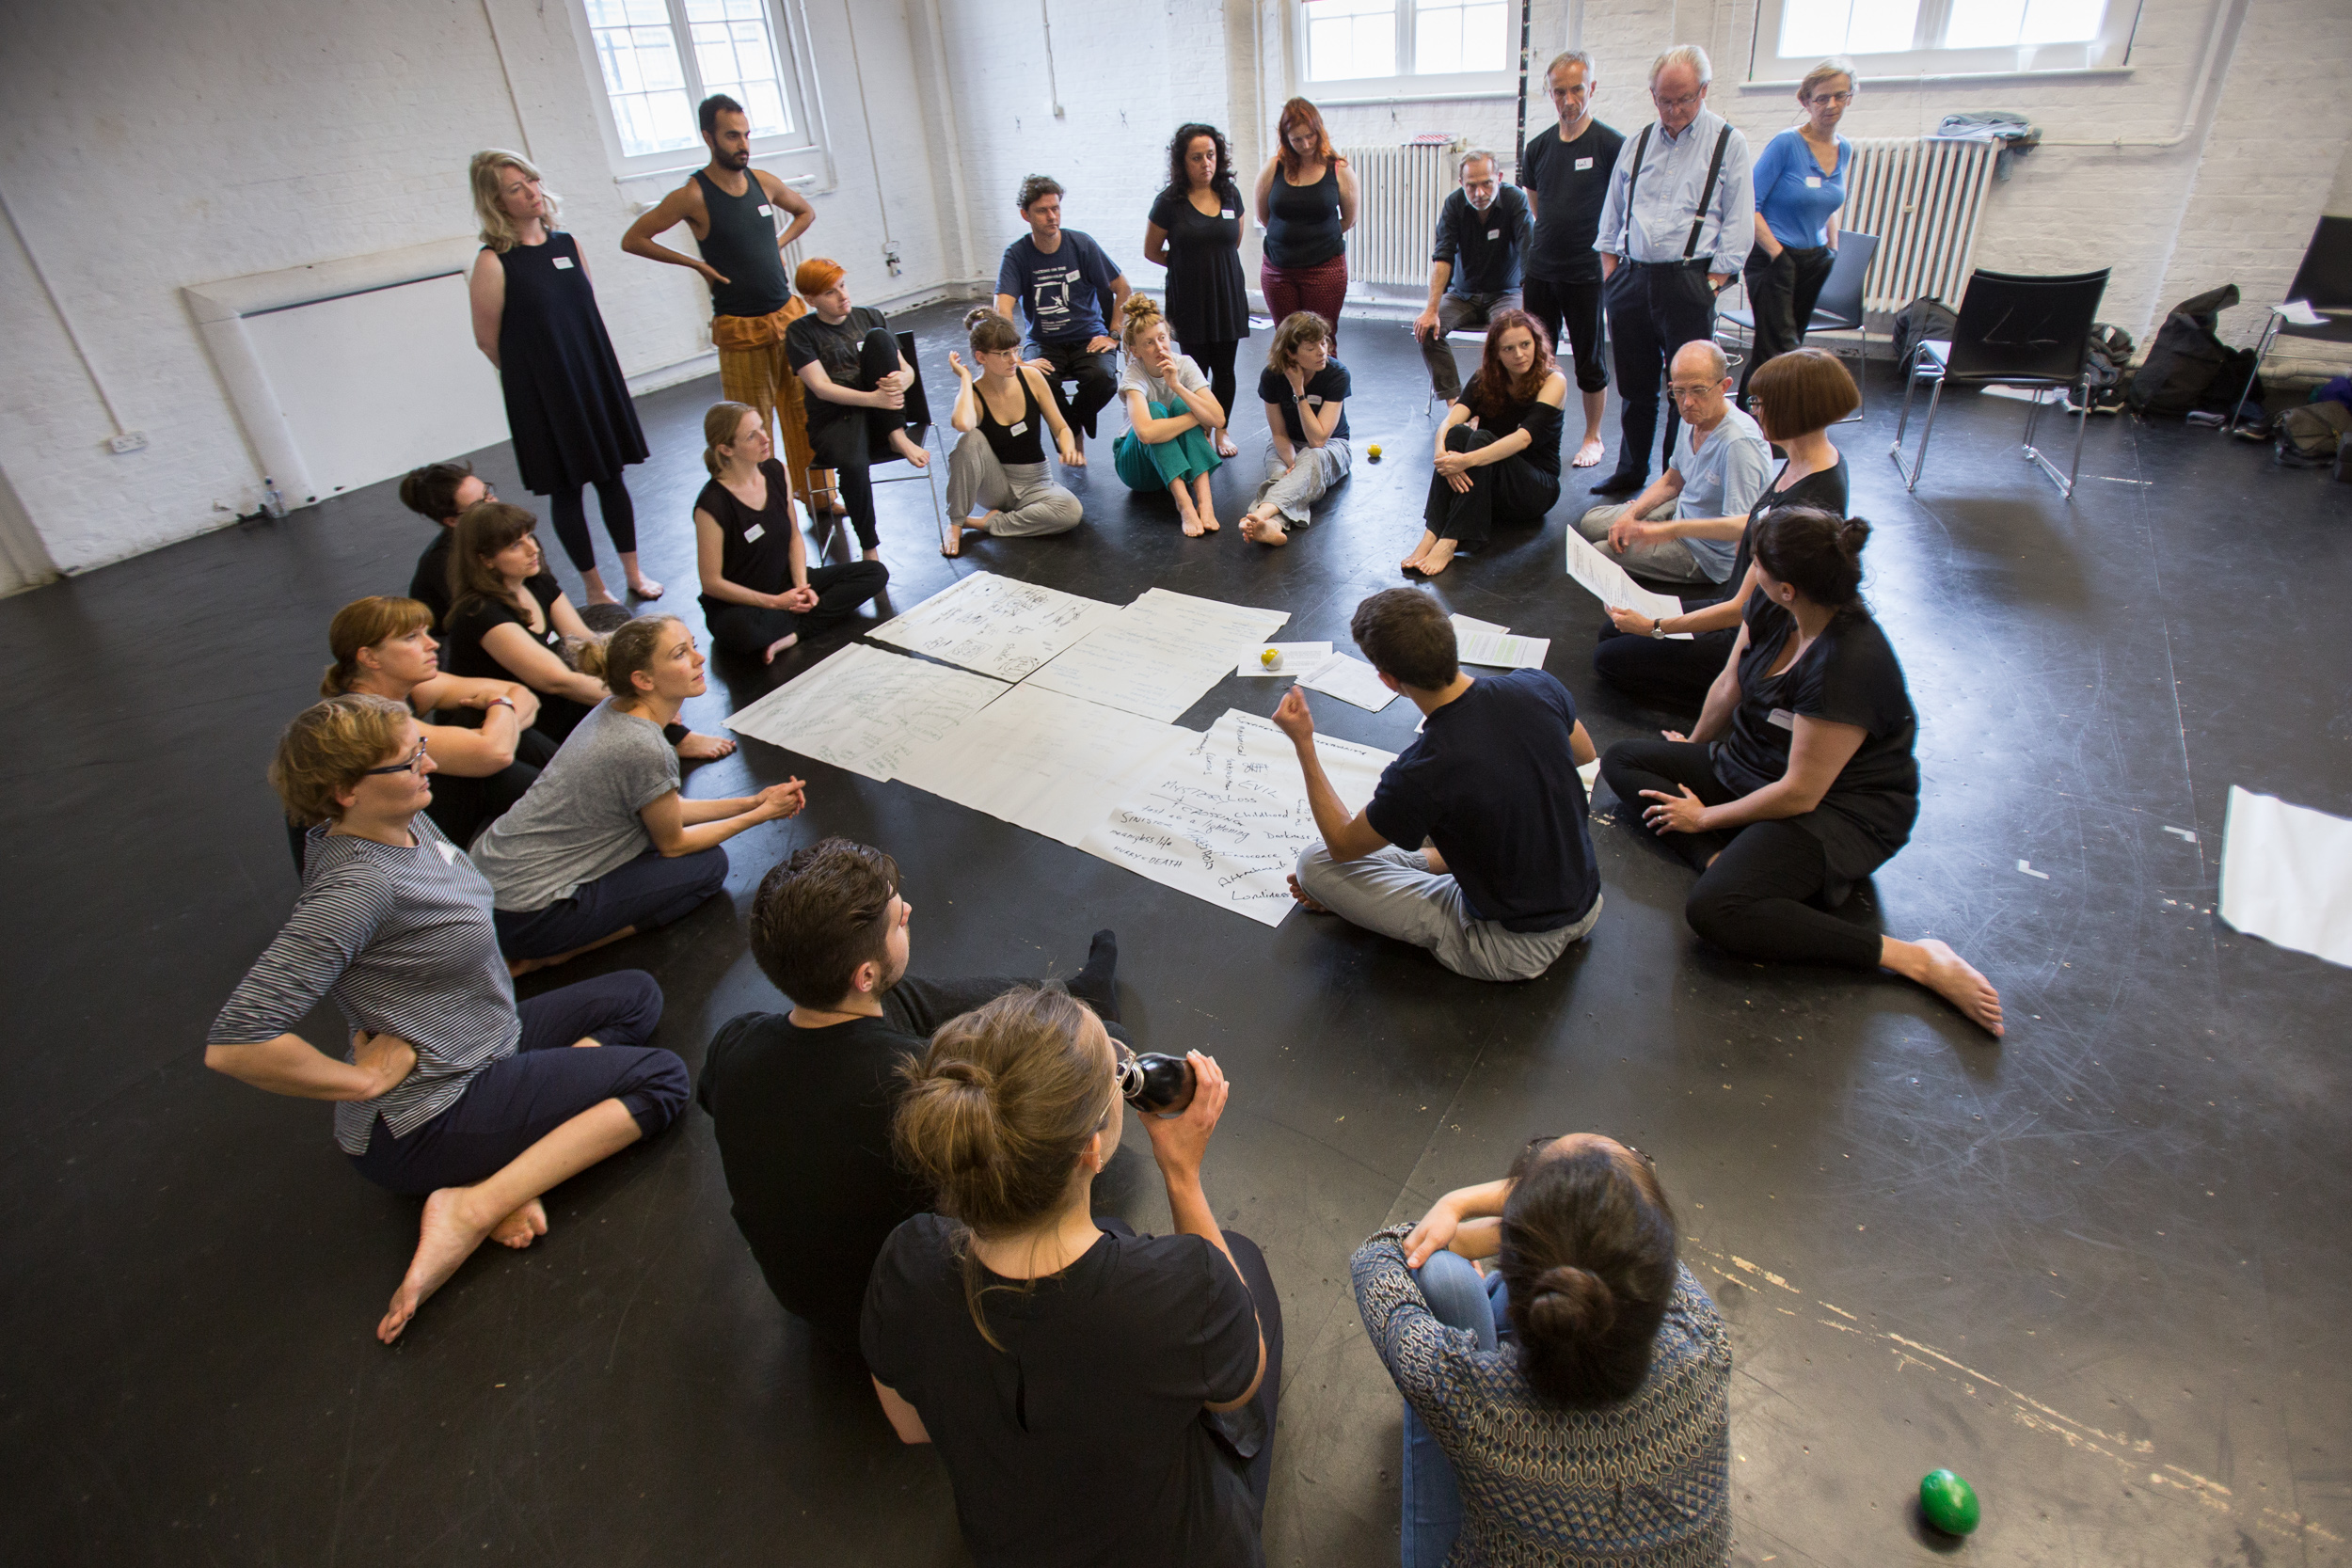 Participants charting 'objective atmosphere' in a devised theatre making praxis symposium with Dr Cass Fleming. Photo by Katerina Kotti.